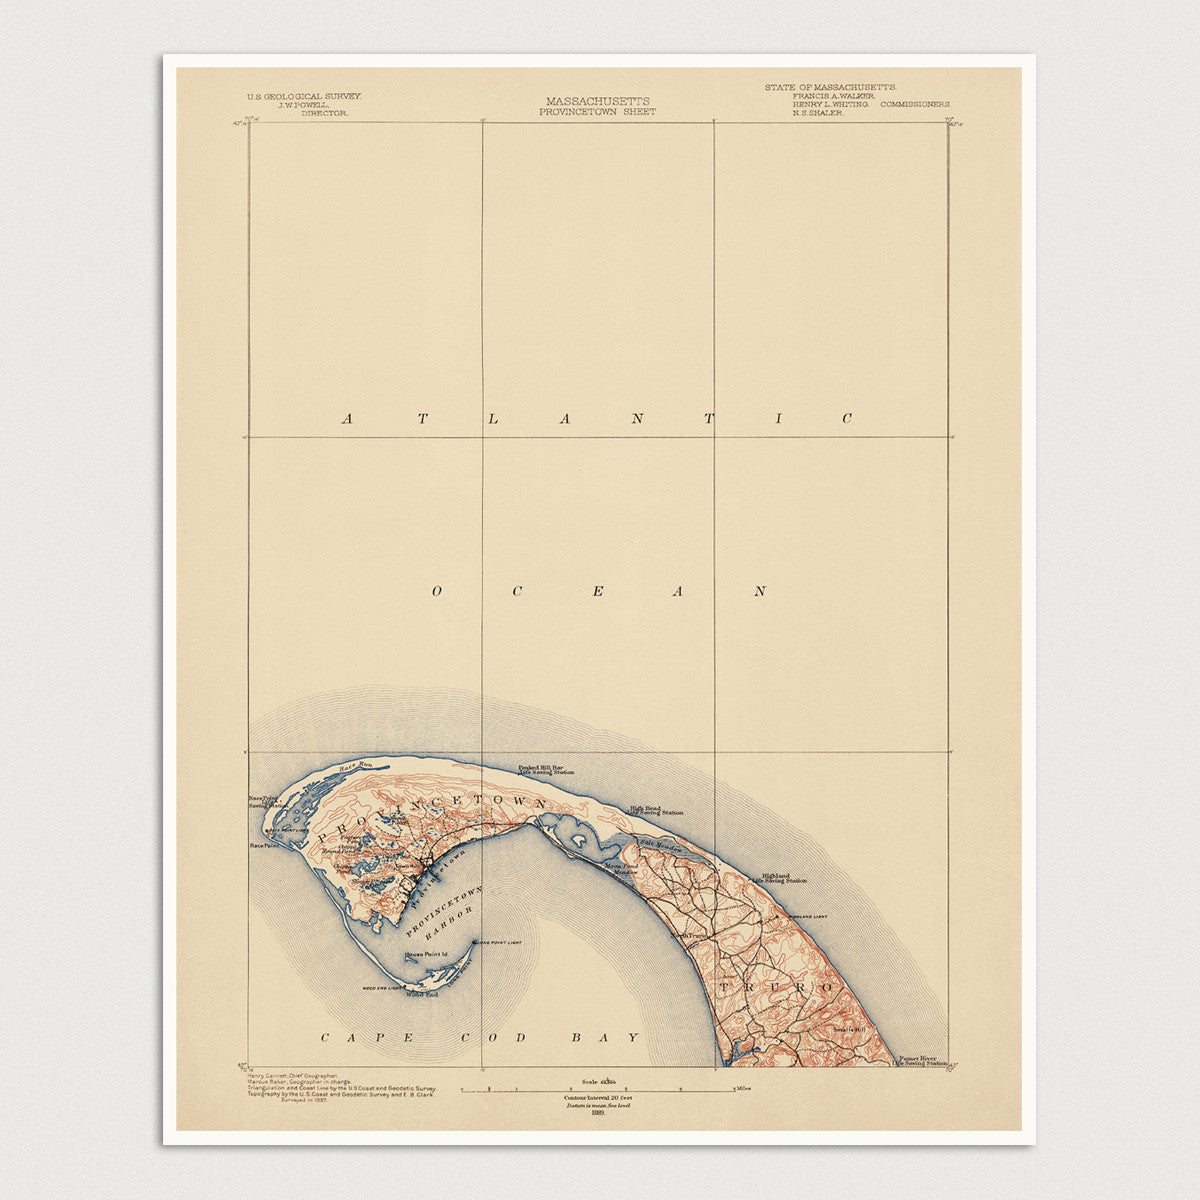 Topographic Map Massachusetts.Usgs Topographic Map Of Cape Cod Massachusetts 1889 Blue Monocle